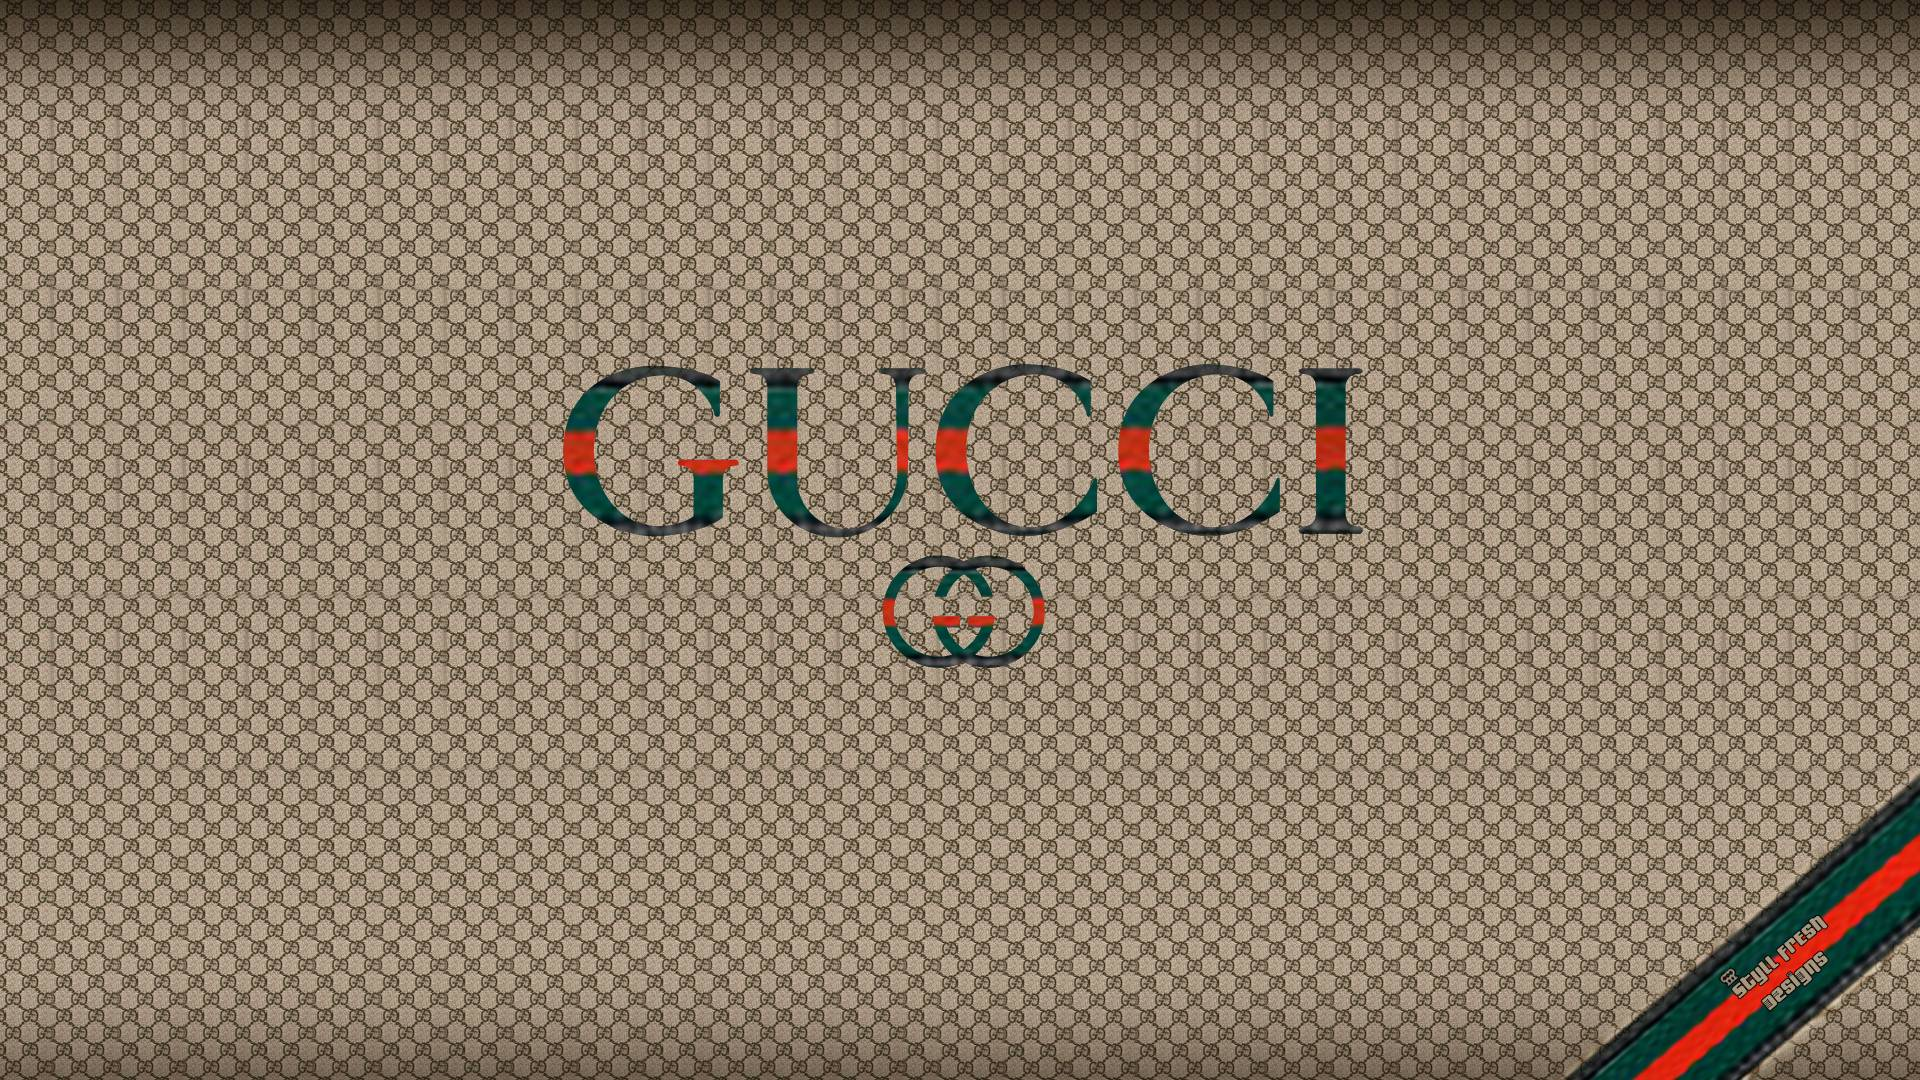 <b>Gucci</b> Mane <b>Wallpaper</b> - WallpaperSafari